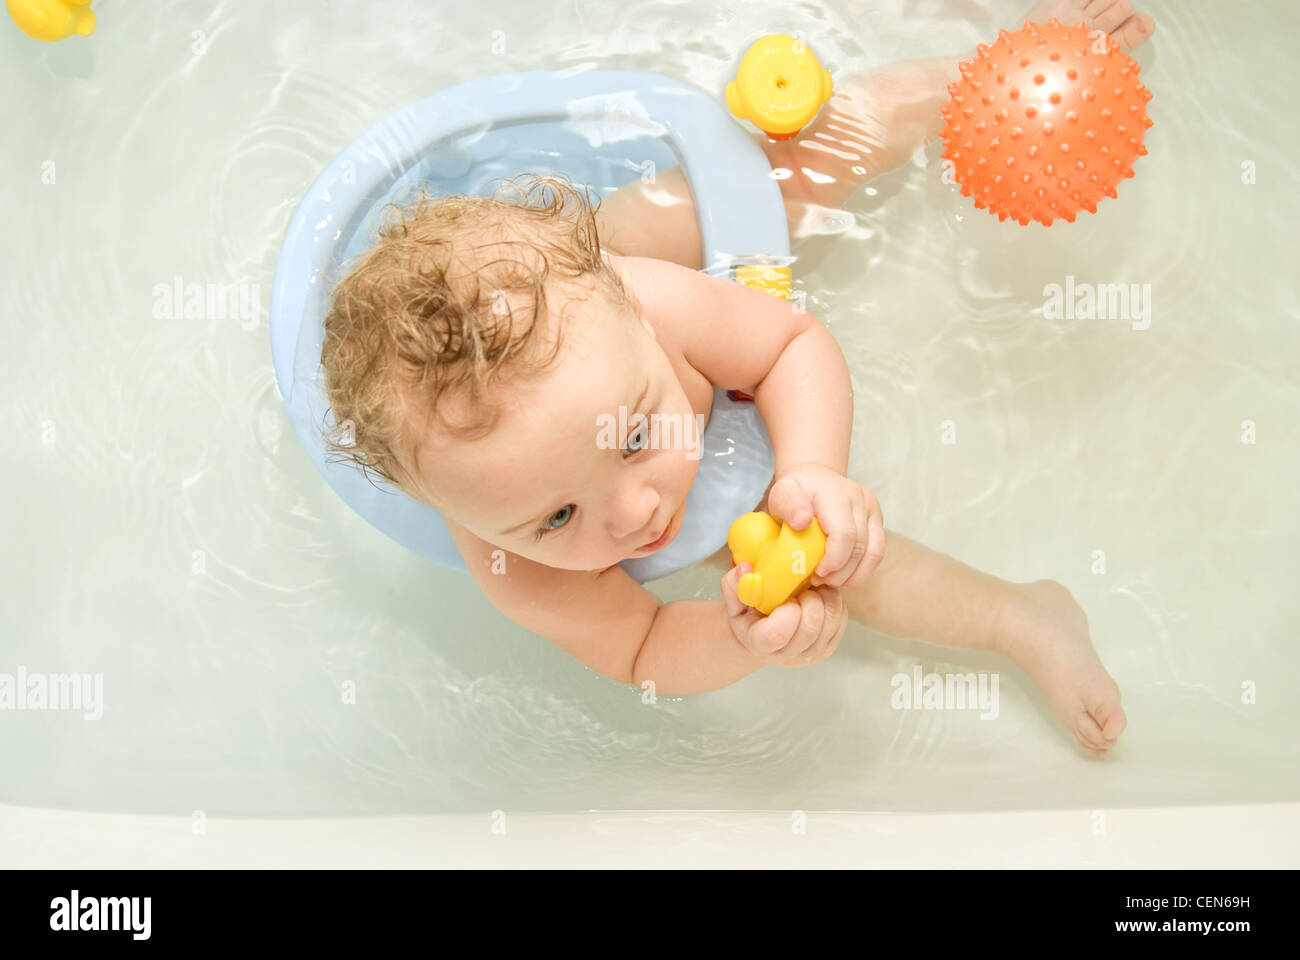 sweet toddler baby boy in bath. top view Stock Photo: 43491885 - Alamy